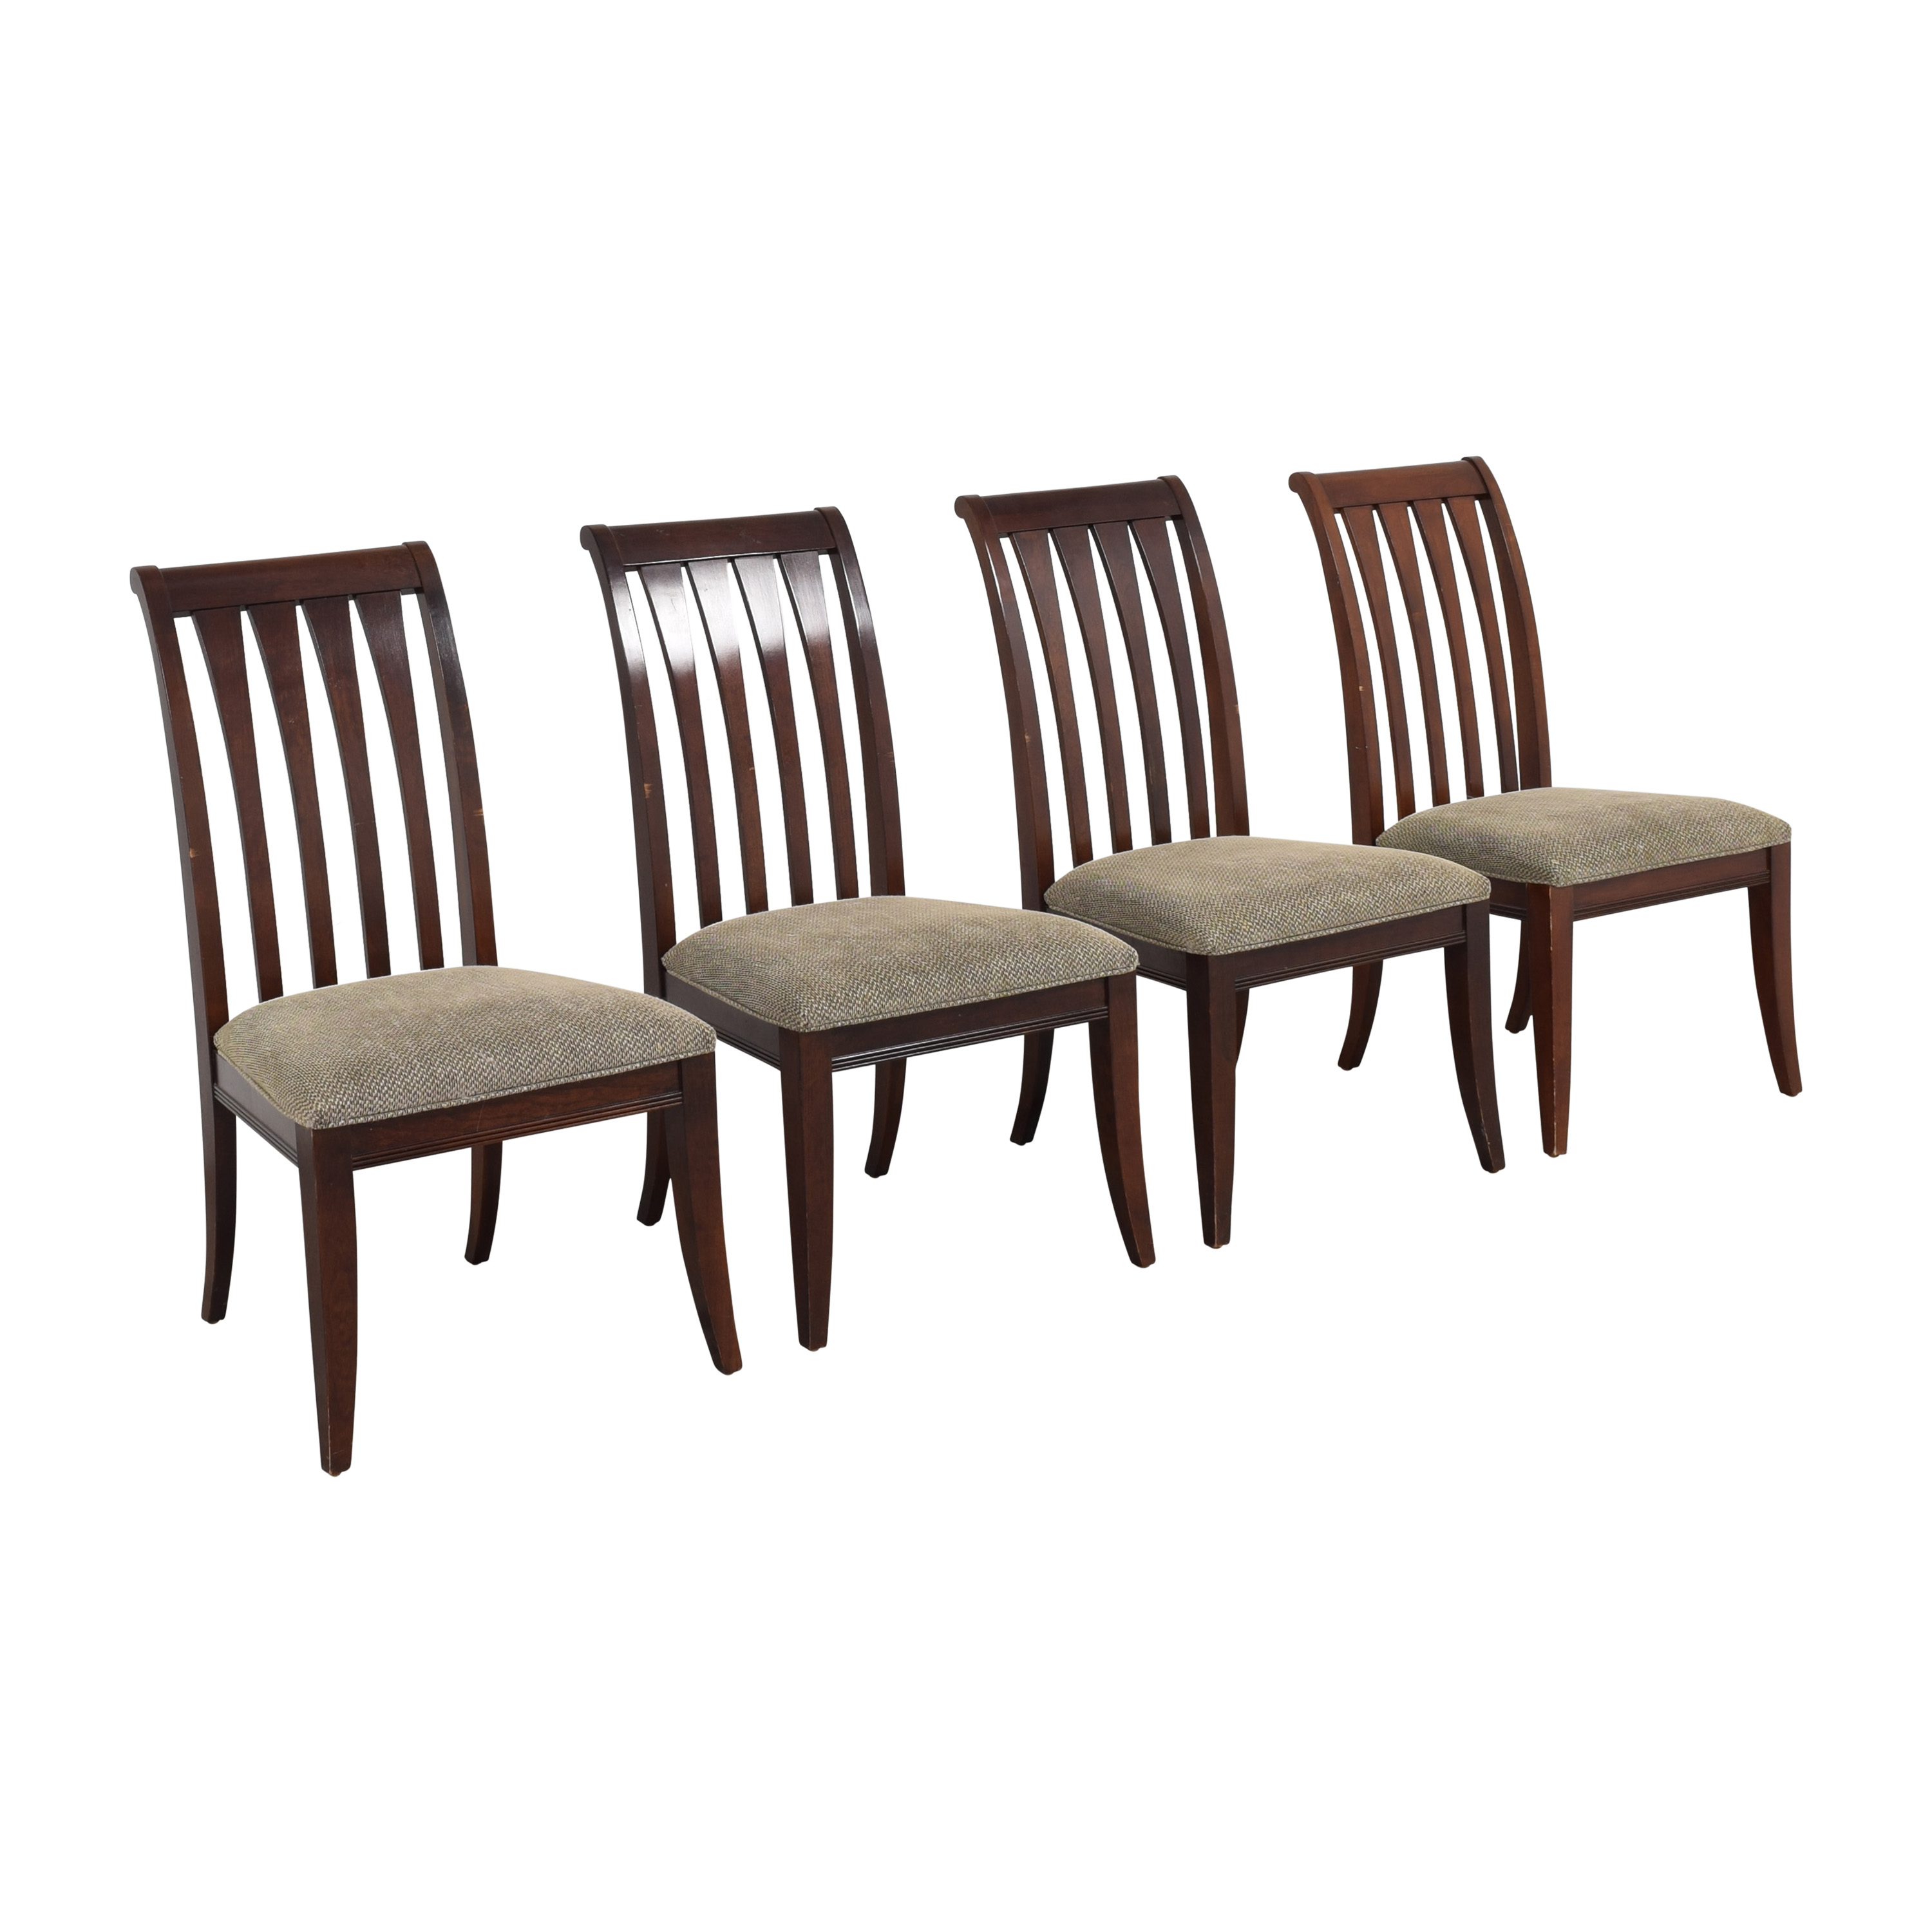 Ethan Allen Ethan Allen Avenue Collection Dining Chairs Chairs